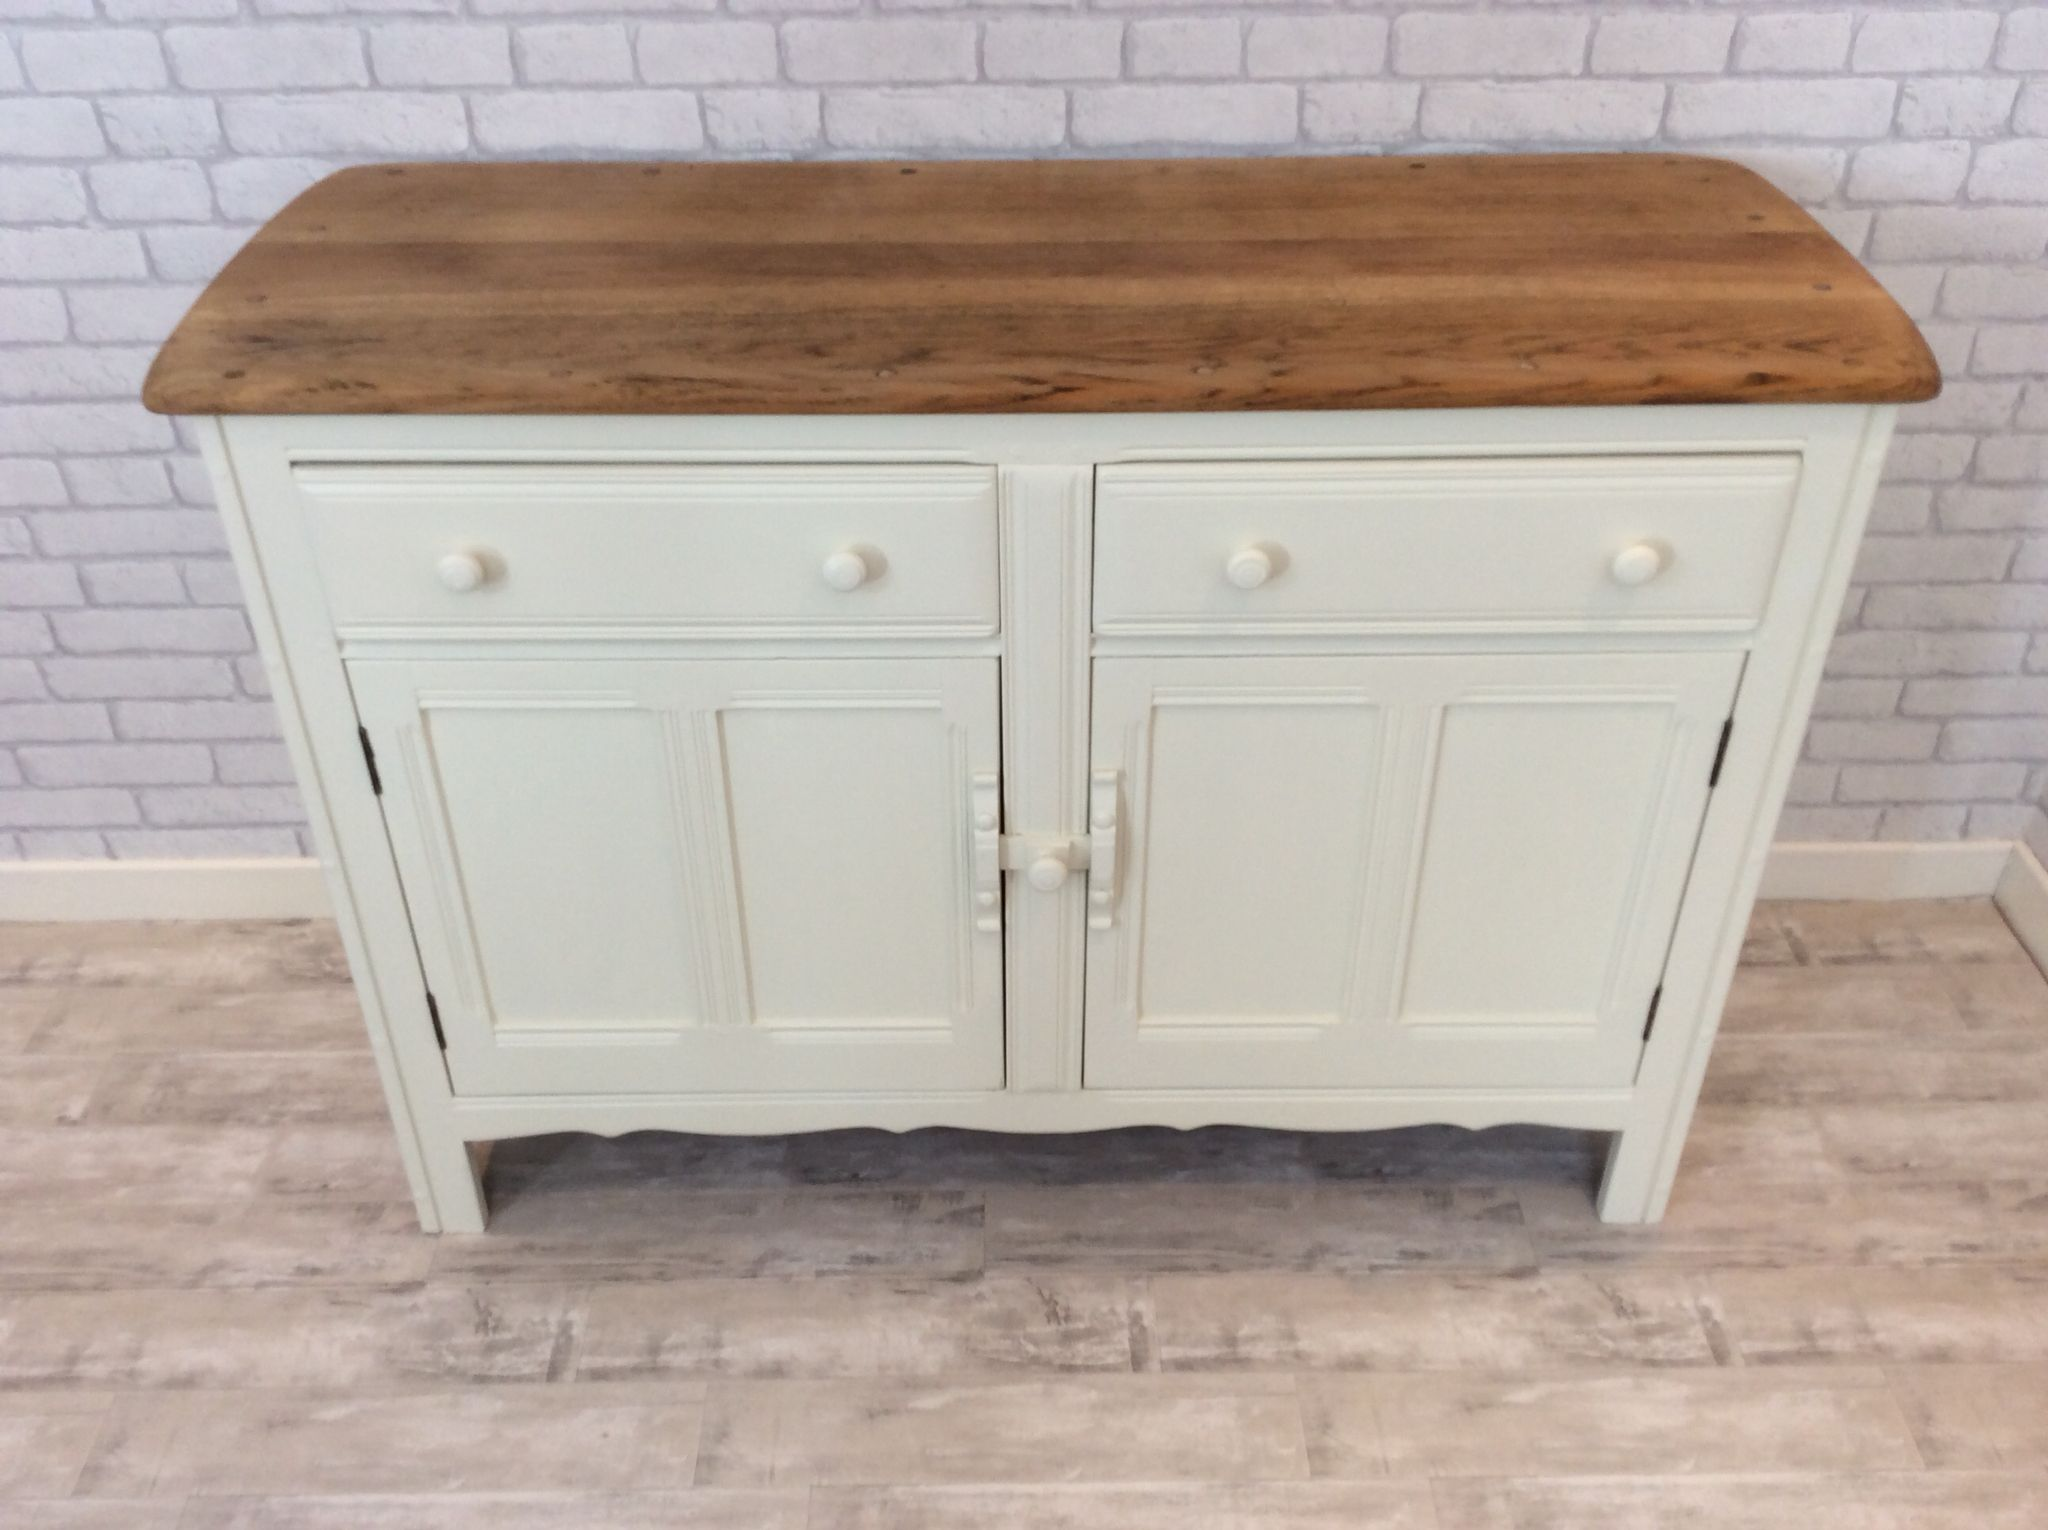 Original Ercol Sideboard Stripped And Painted